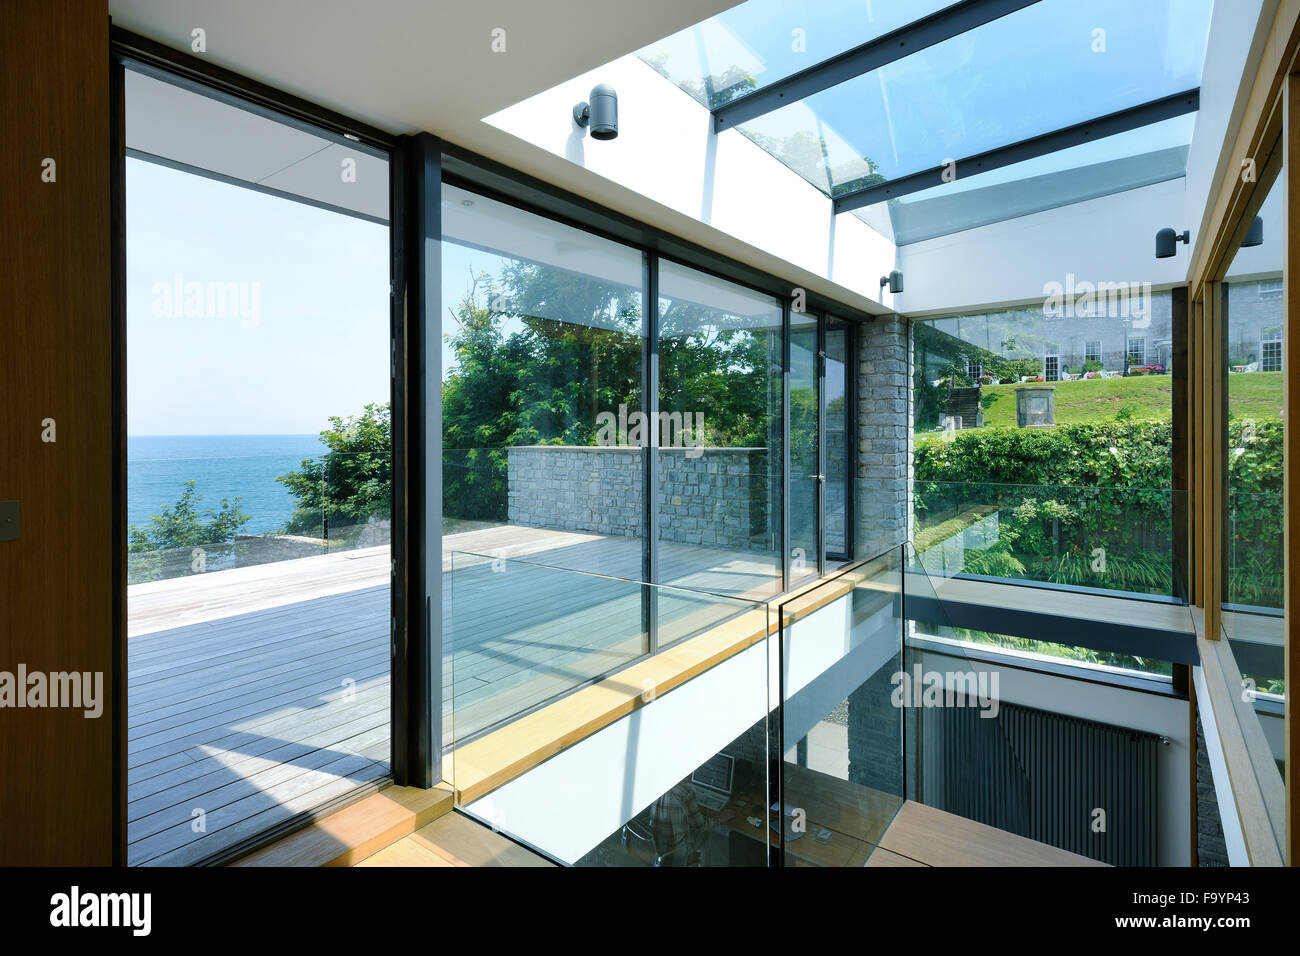 large sliding glass doors open floor to ceiling glass panels a low profile building in a seaside location: large sliding patio doors